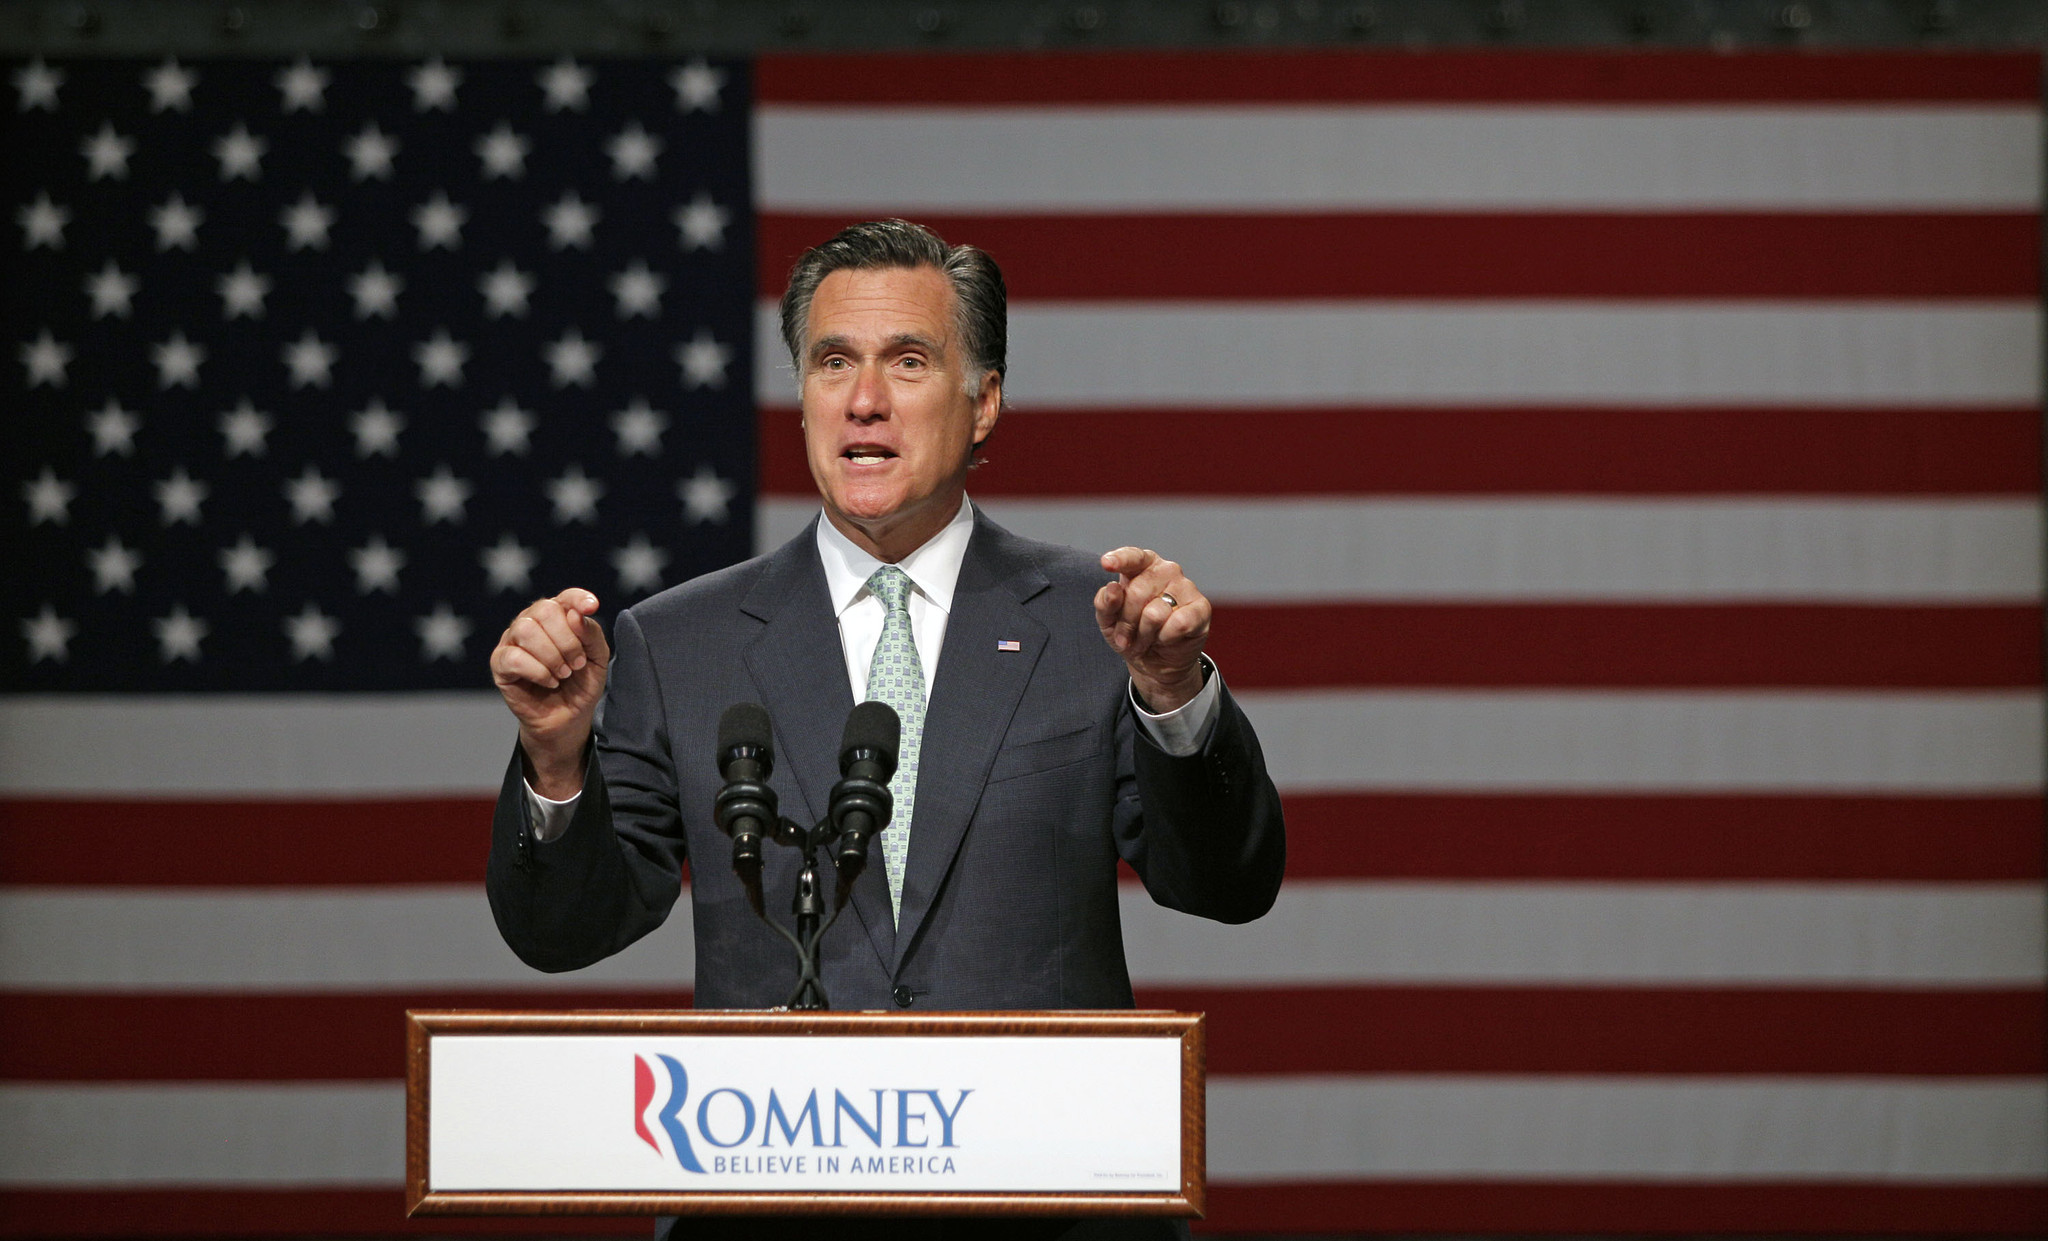 Mitt Romney's victory in the Indiana primary continues his march toward the GOP presidential nomination. He is expected to secure the 1,144 delegates needed to cinch the race by the end of the month. Above, Romney speaks at a campaign event in Lansing, Mich.